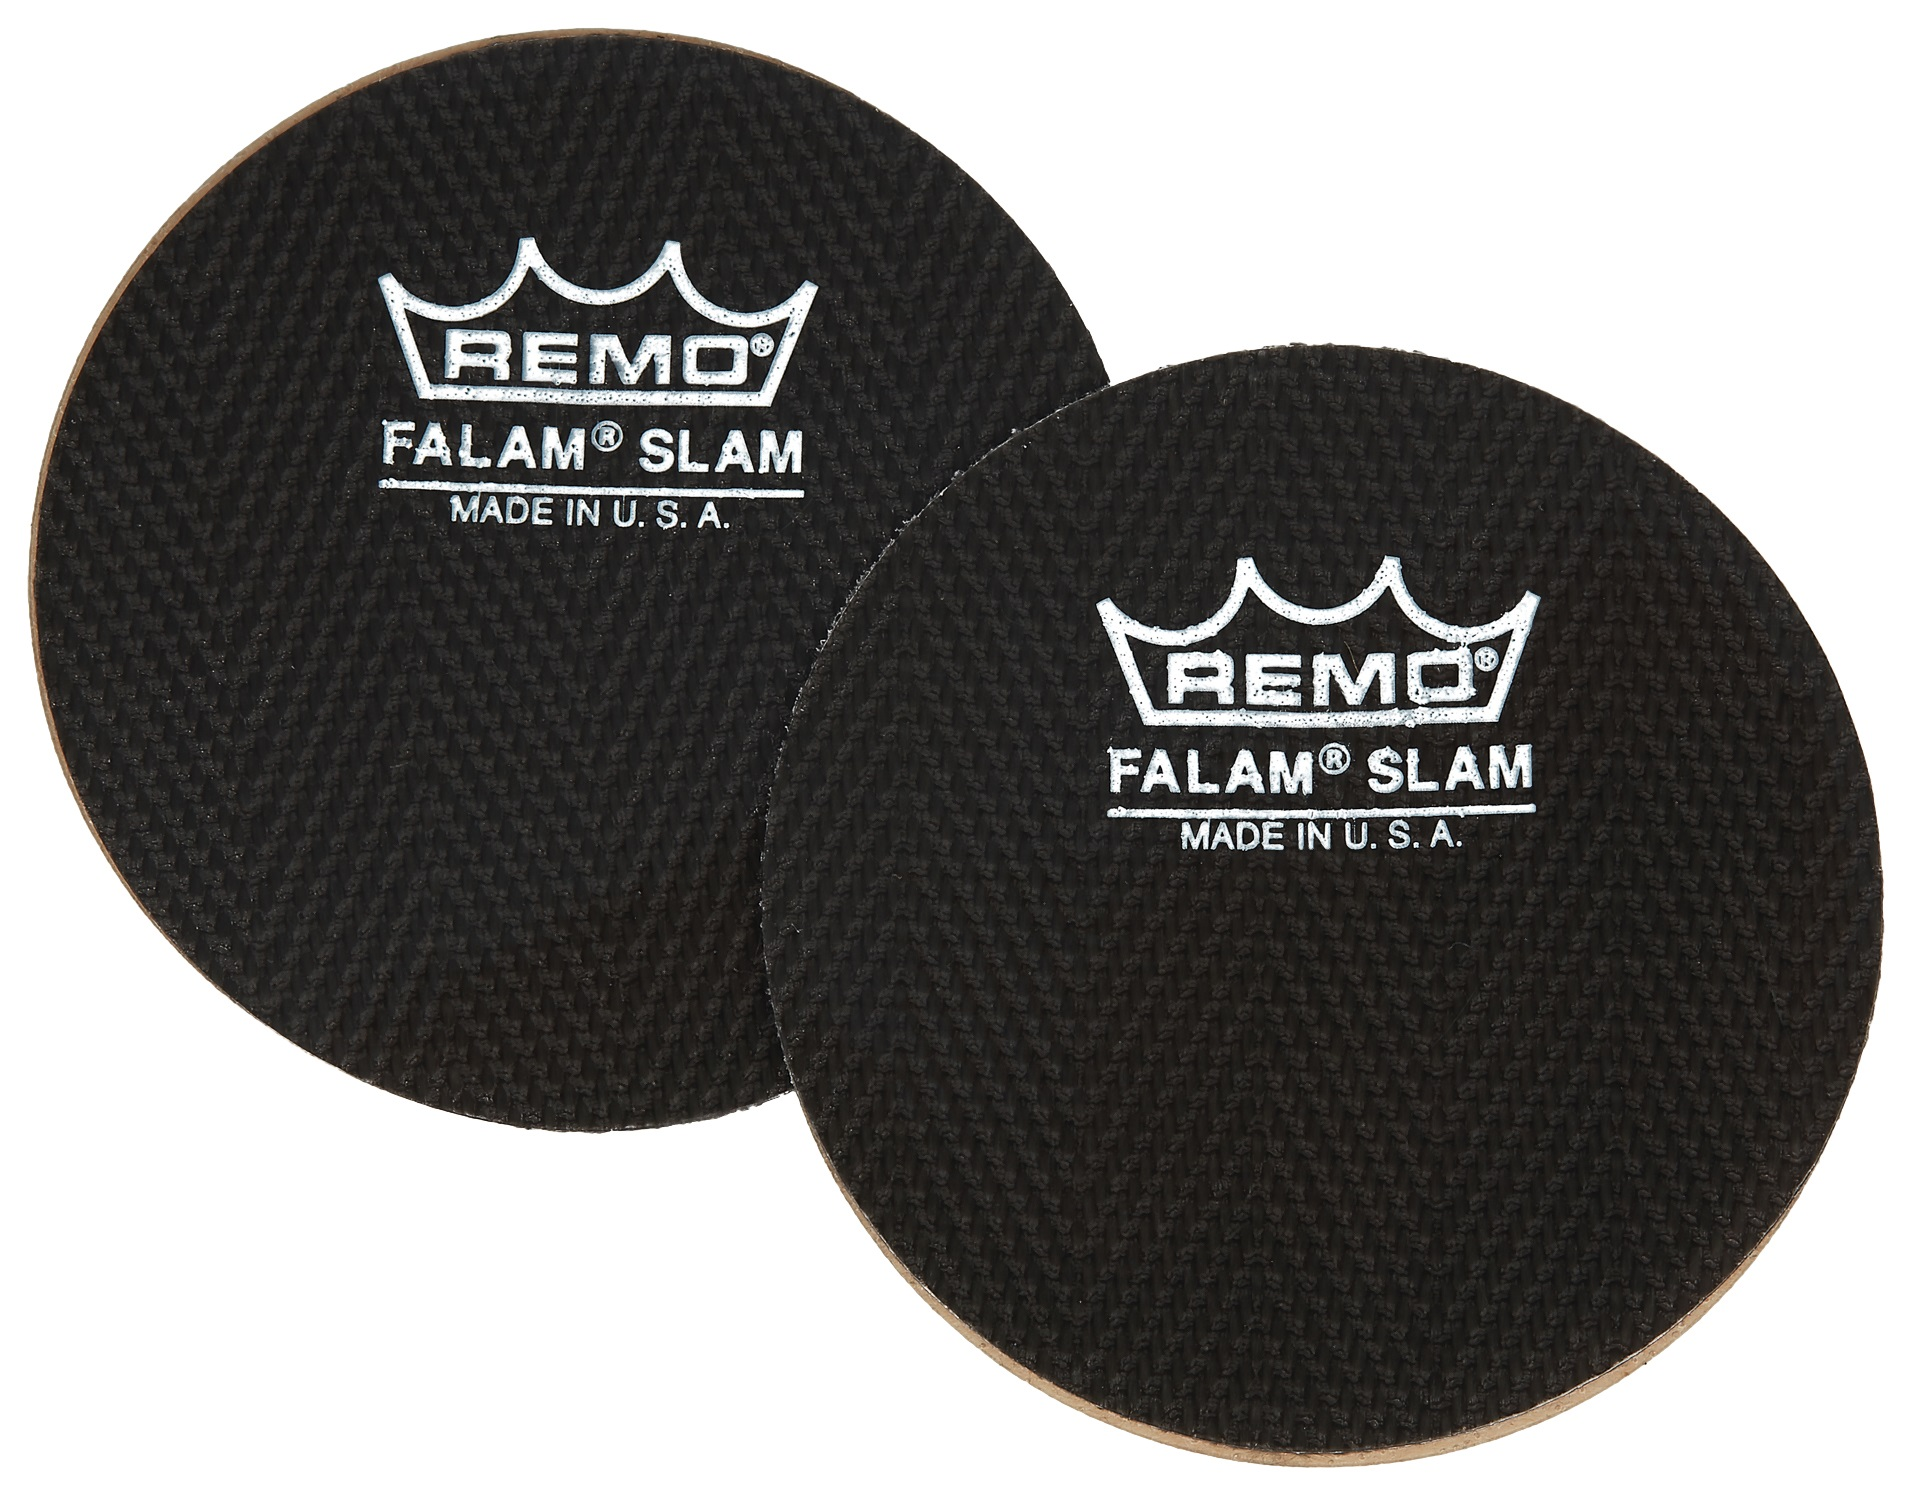 "Remo 2,5"" Single Falam Slam Black"